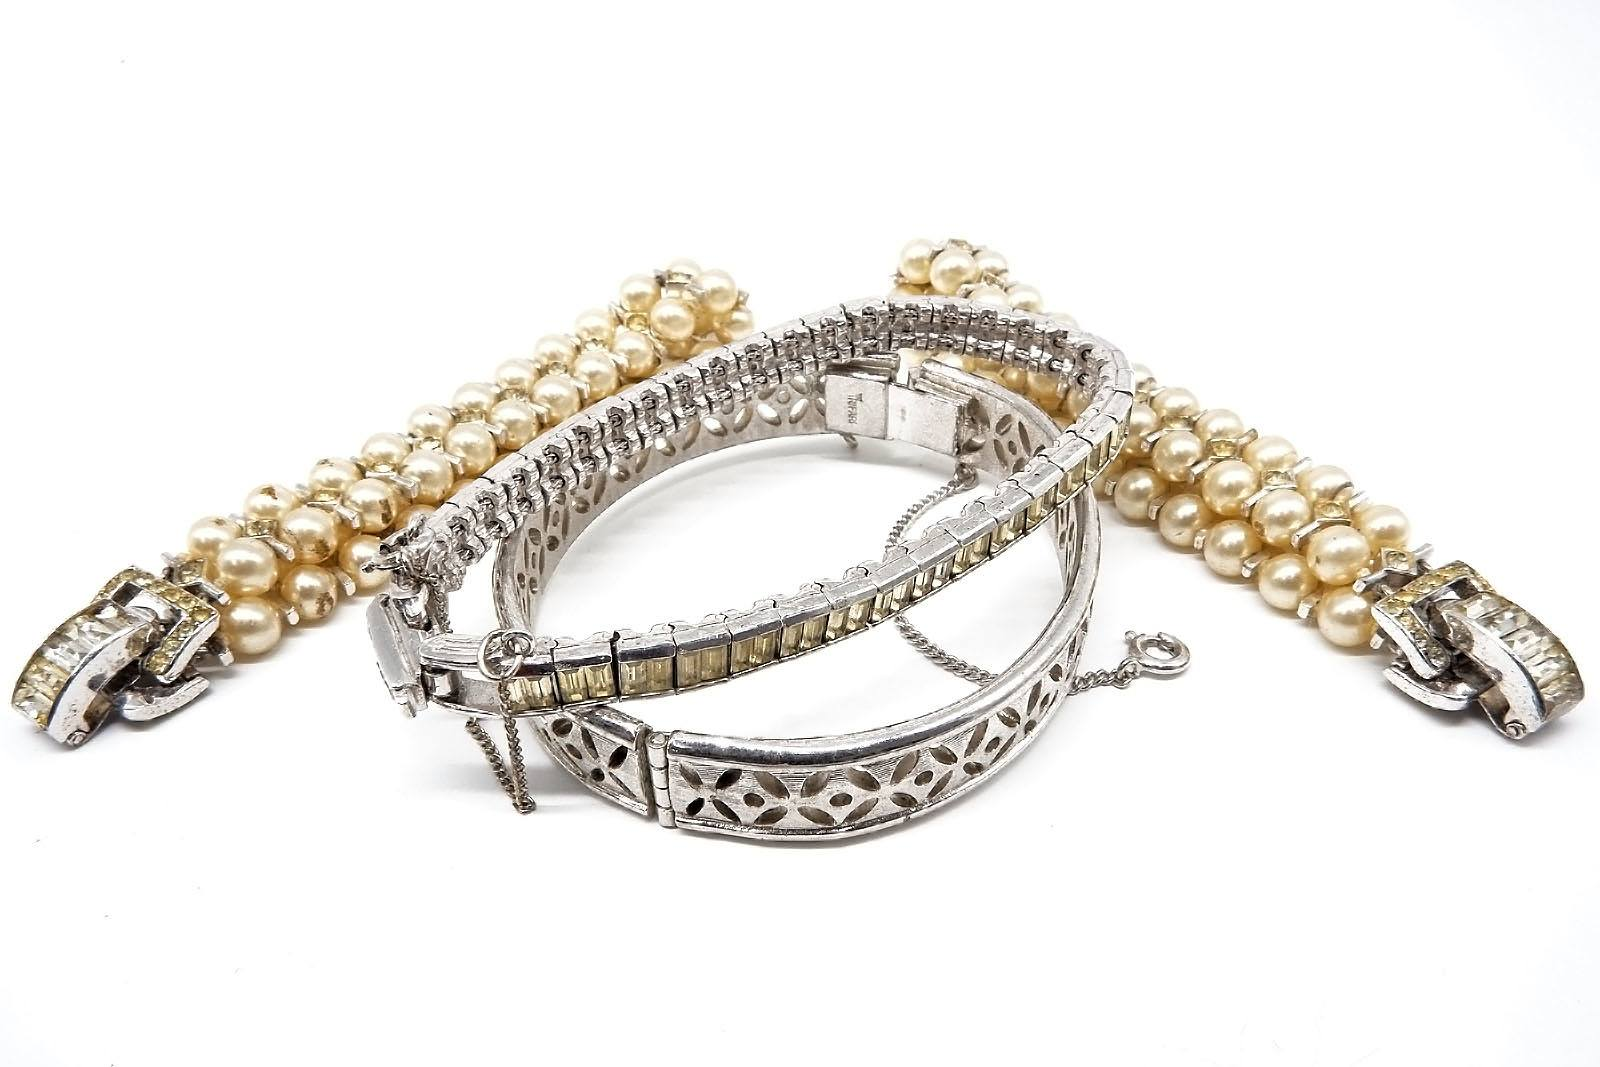 'Pair of Faux Pearl Bracelets and Two Others'